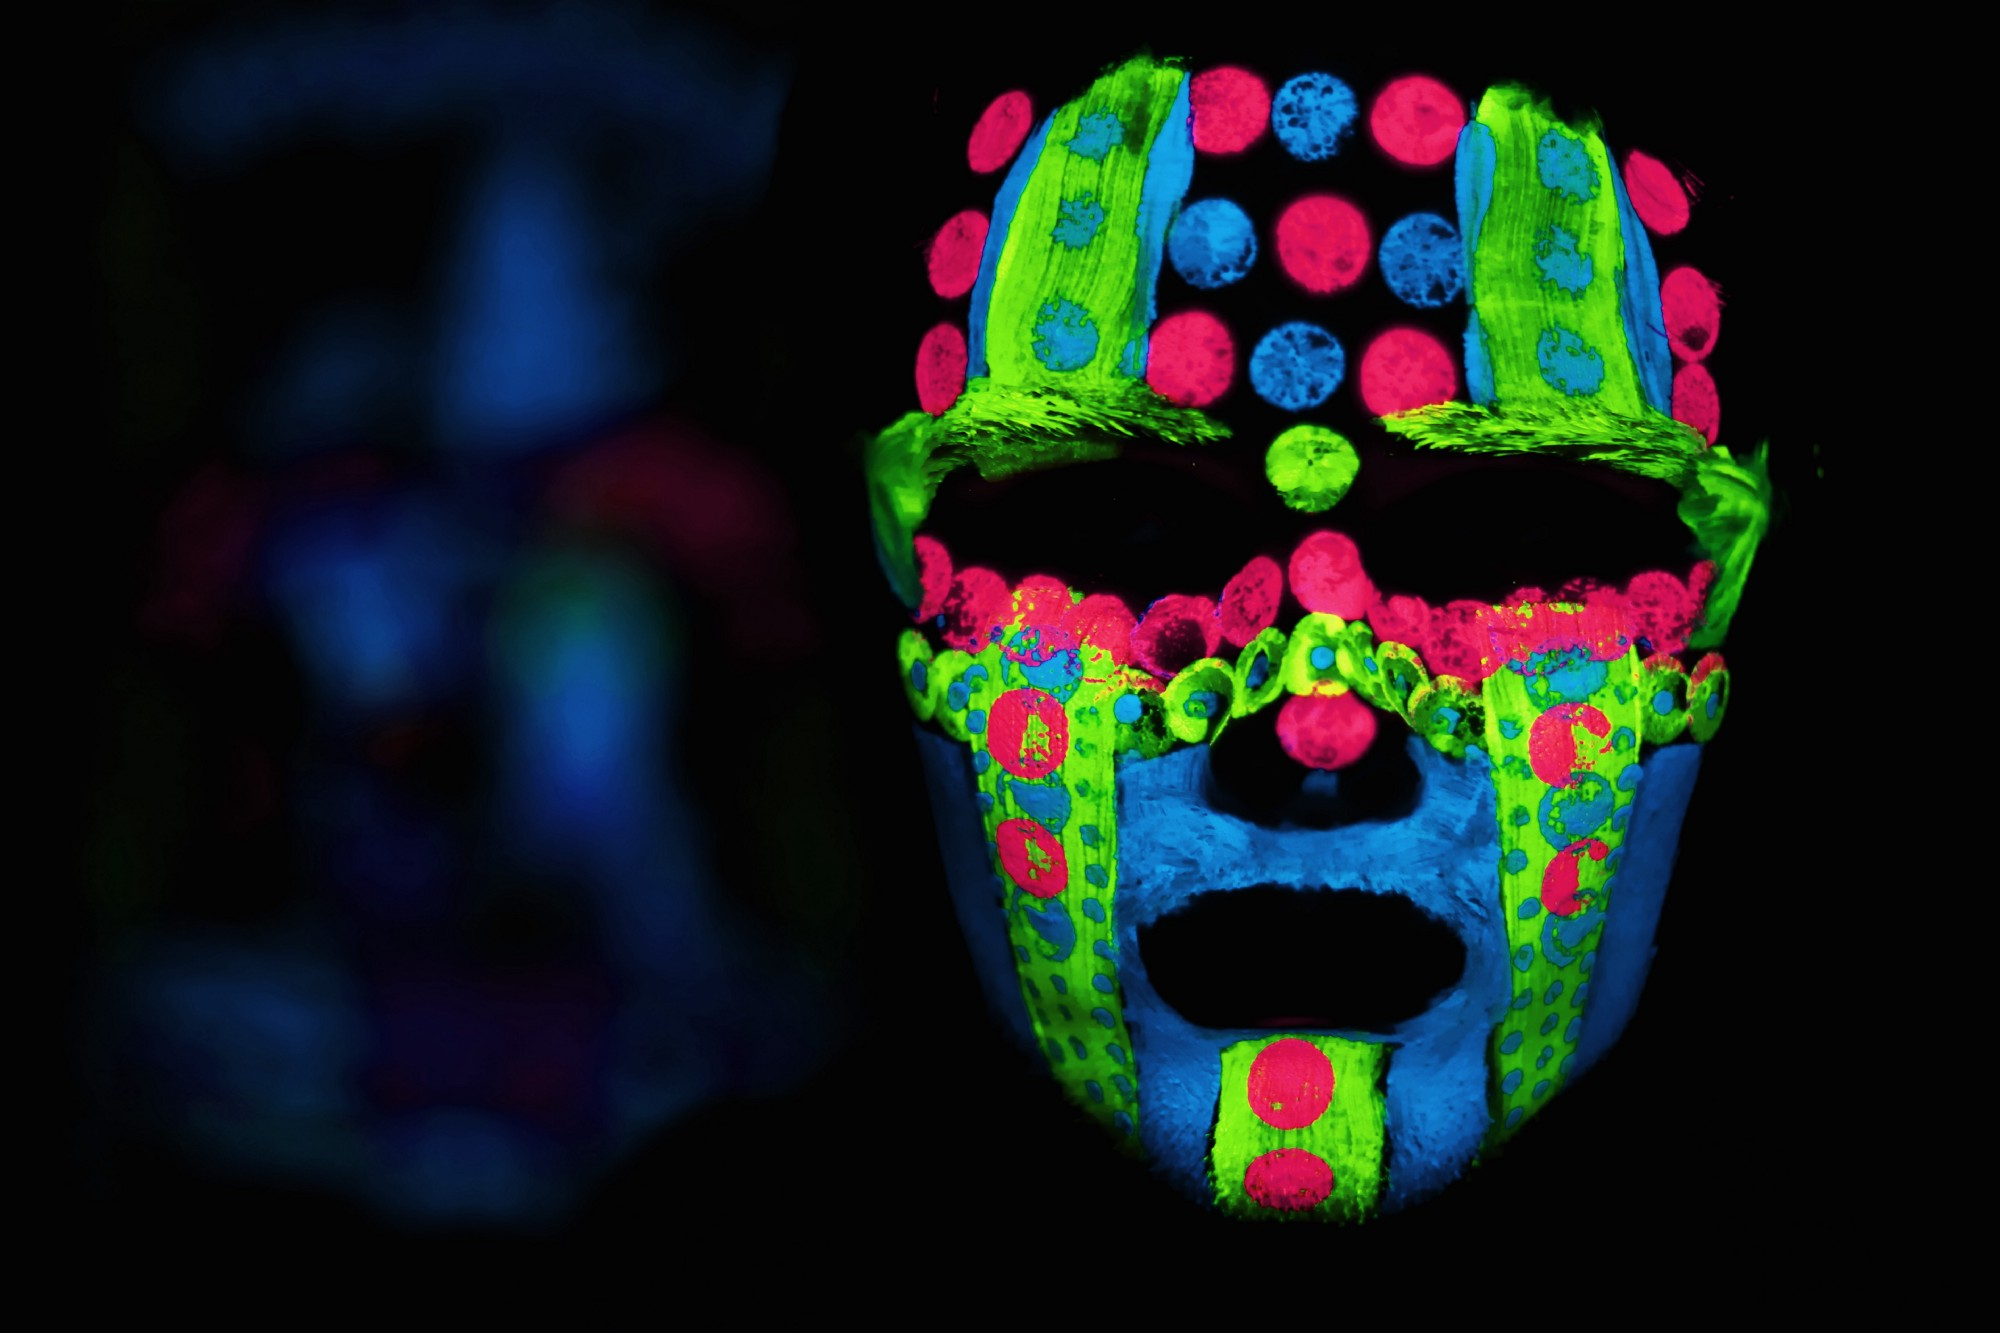 man's face in the dark with neon multicolored paint